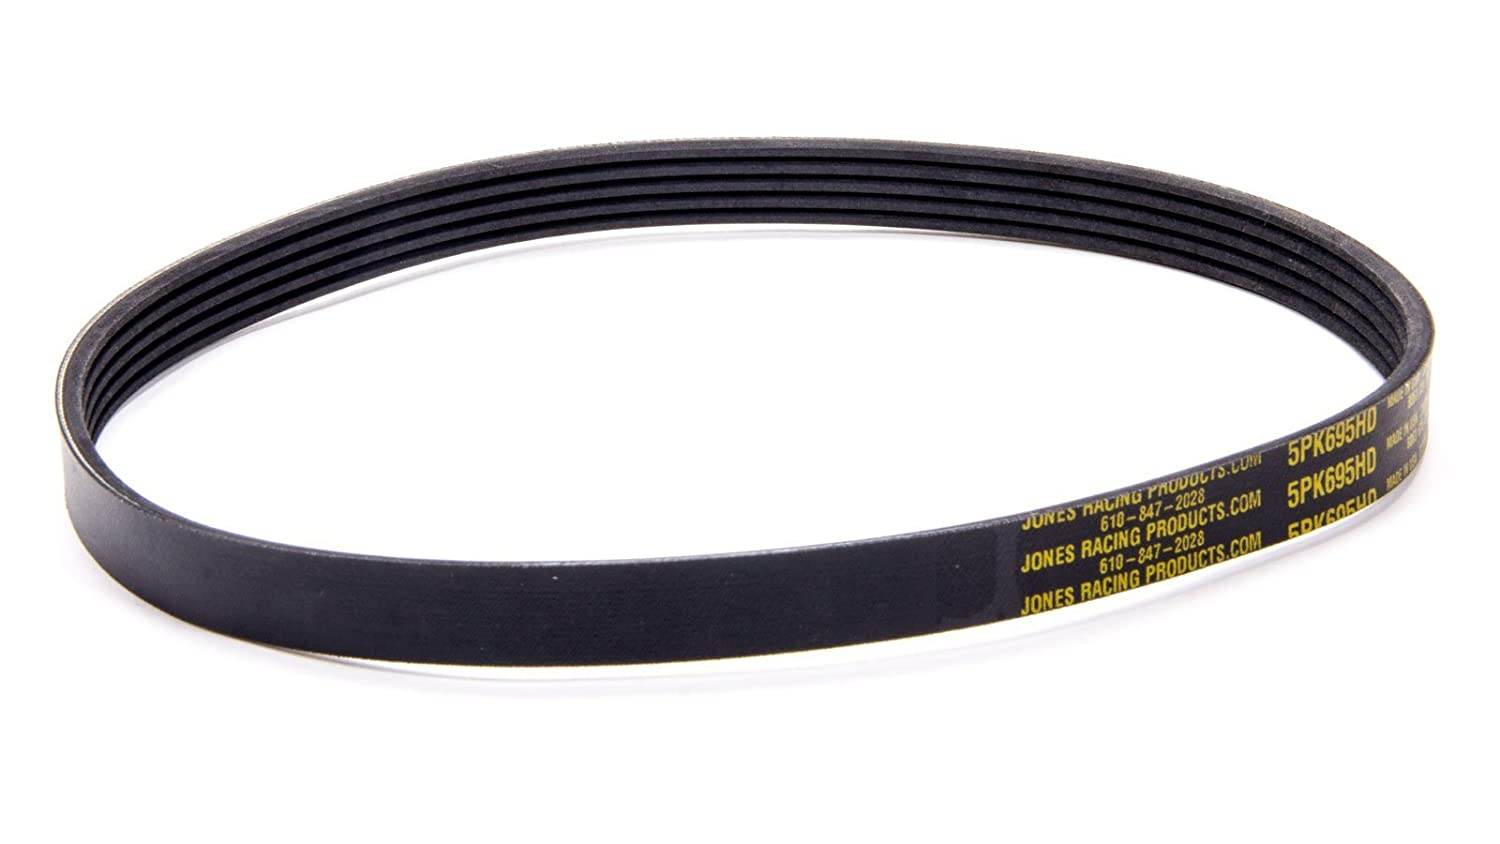 Jones Racing Products 5PK-850HD Serpentine Belt